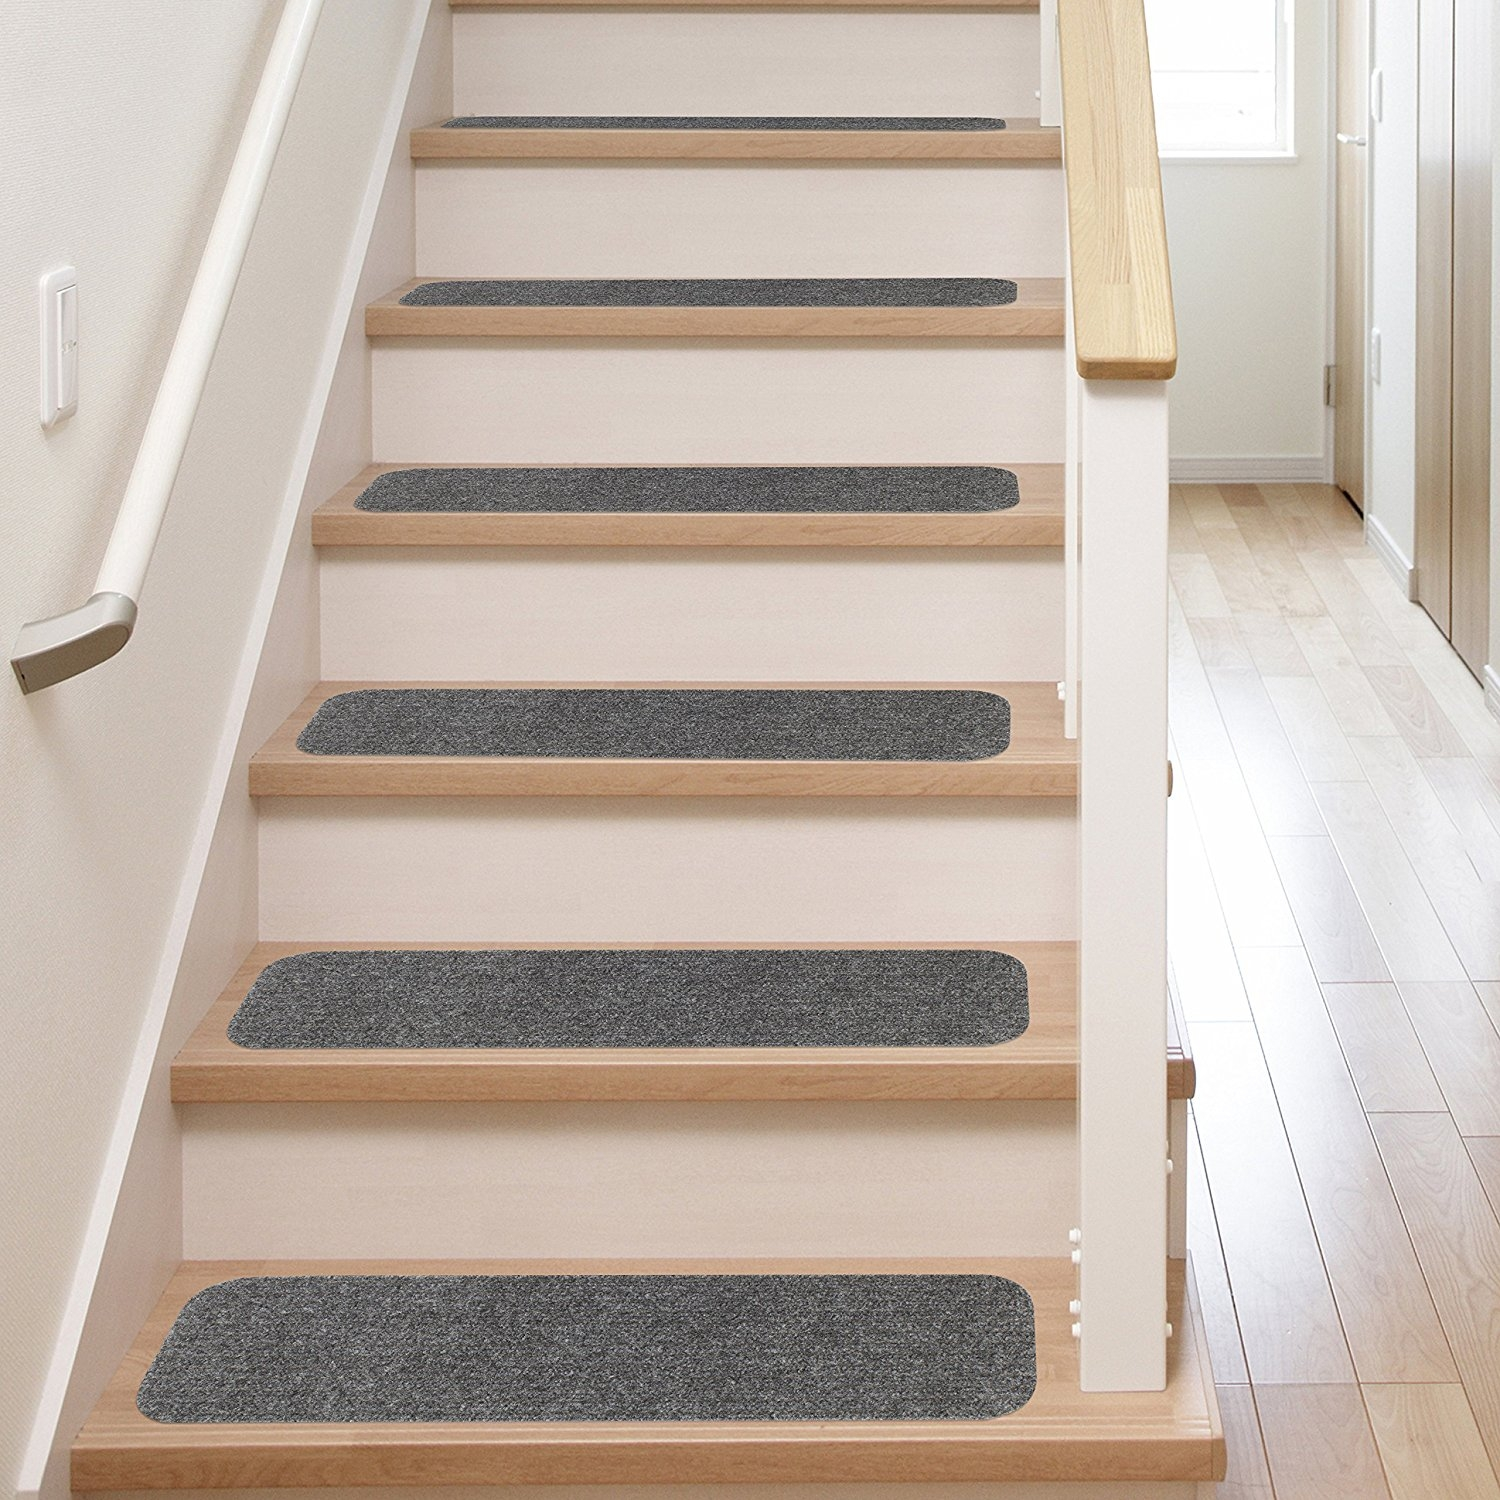 15 Inspirations Carpet Step Covers For Stairs